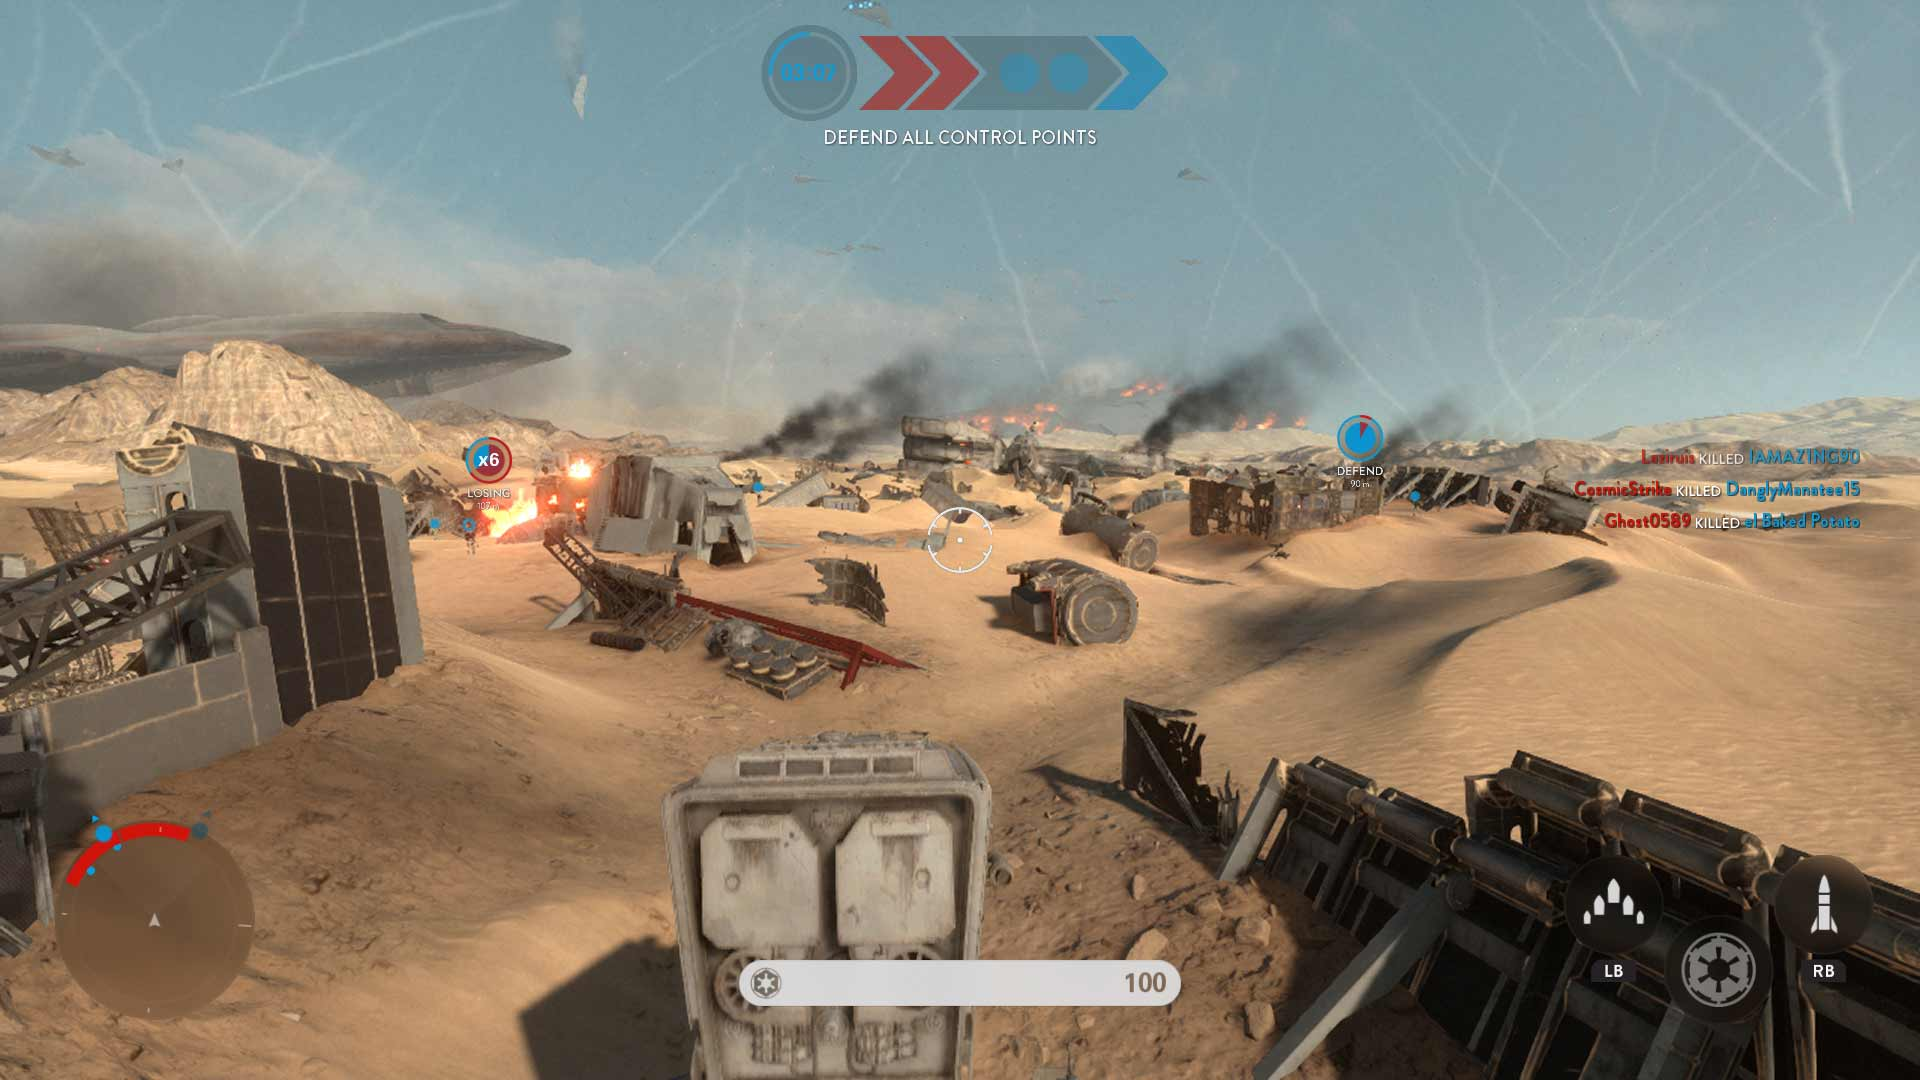 Star Wars Battlefront: Battle of Jakku Screenshot